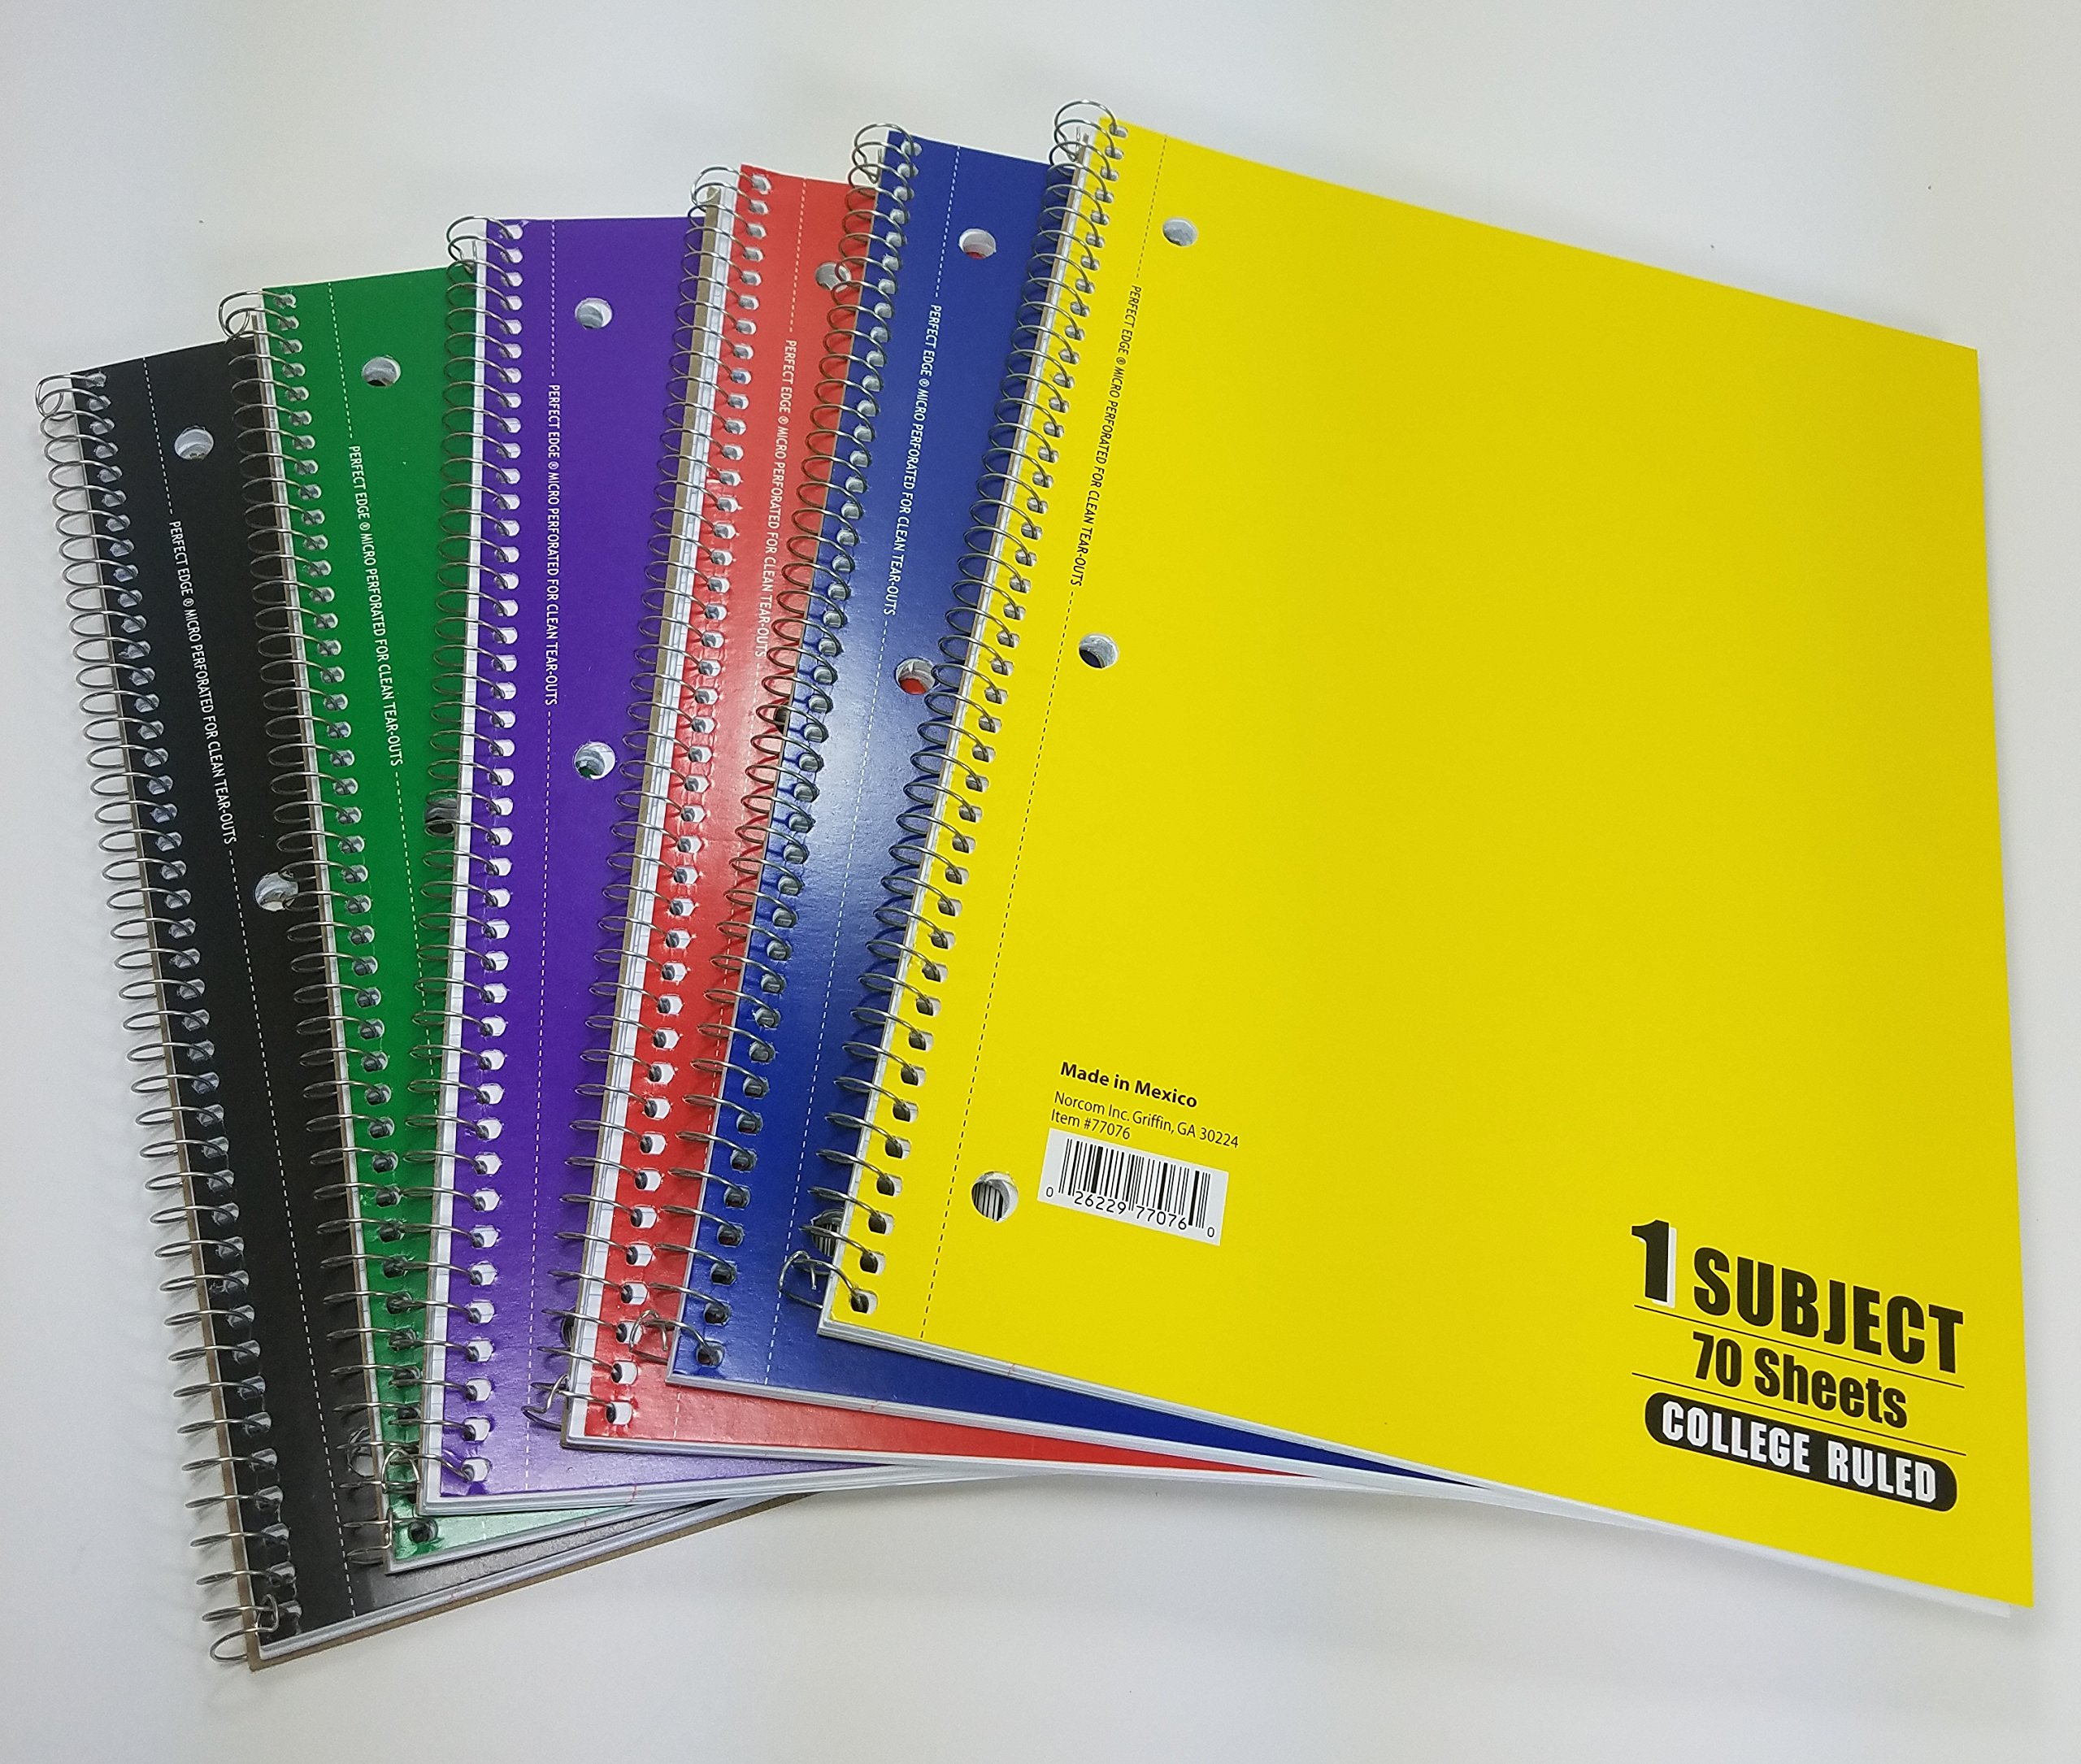 6 Spiral Bound Notebooks, 70 Pages Each, College Ruled, Red, Blue, Green, Yellow, Purple, Black by Norcom (Image #1)